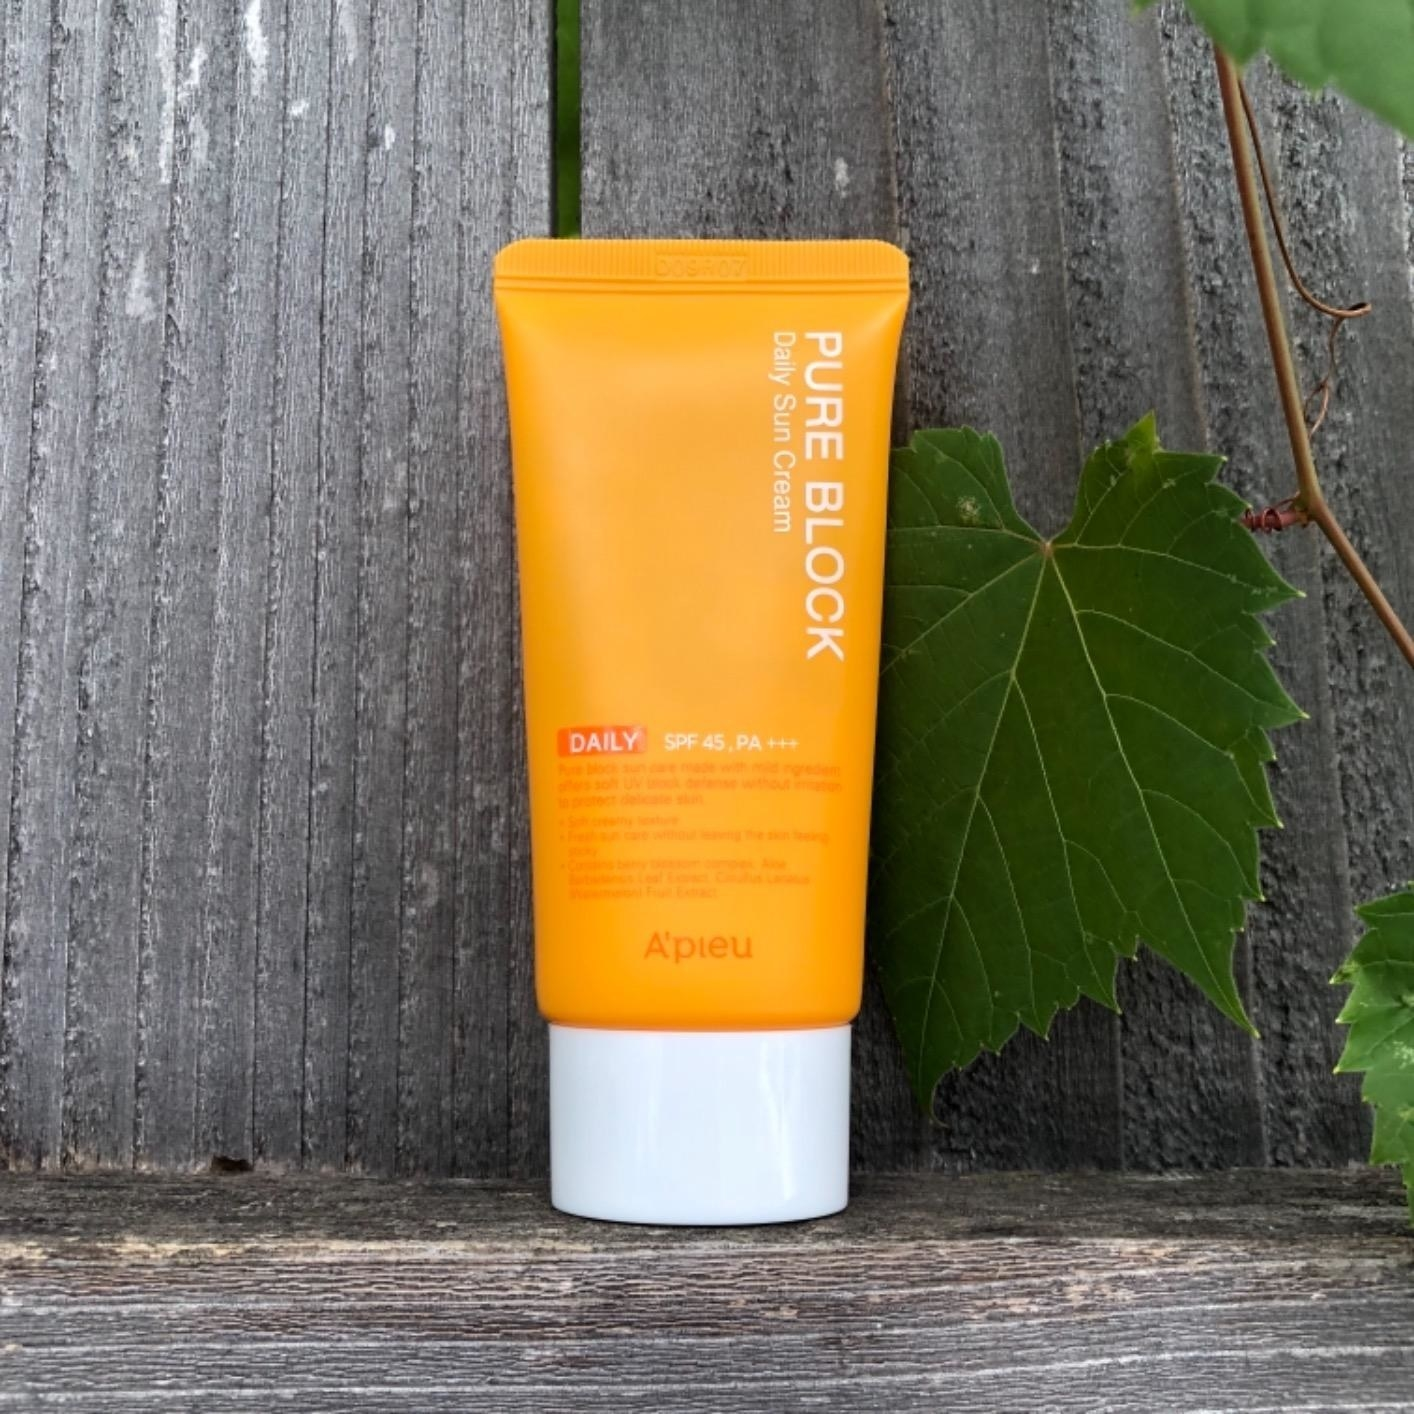 A reviewer photo of the product tube